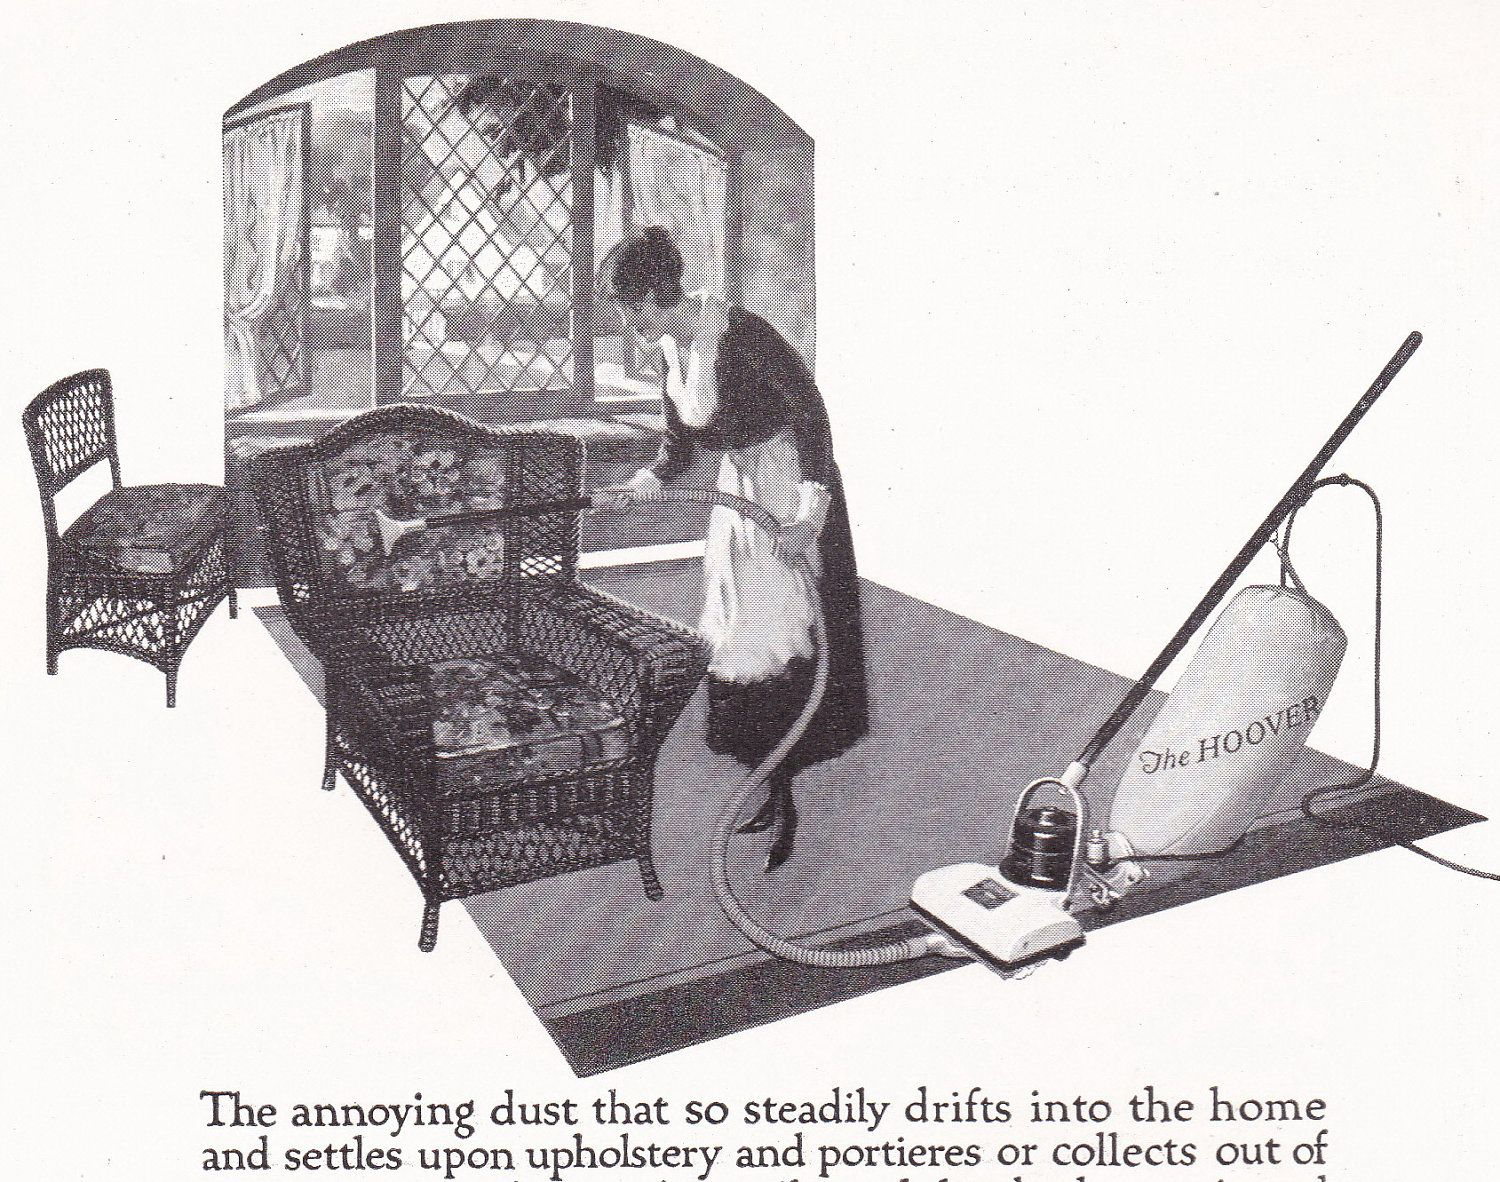 1920s Vintage HOOVER Vacuum Housewife Cleaning Wicker Furniture Illustrated  Ad Advertisement